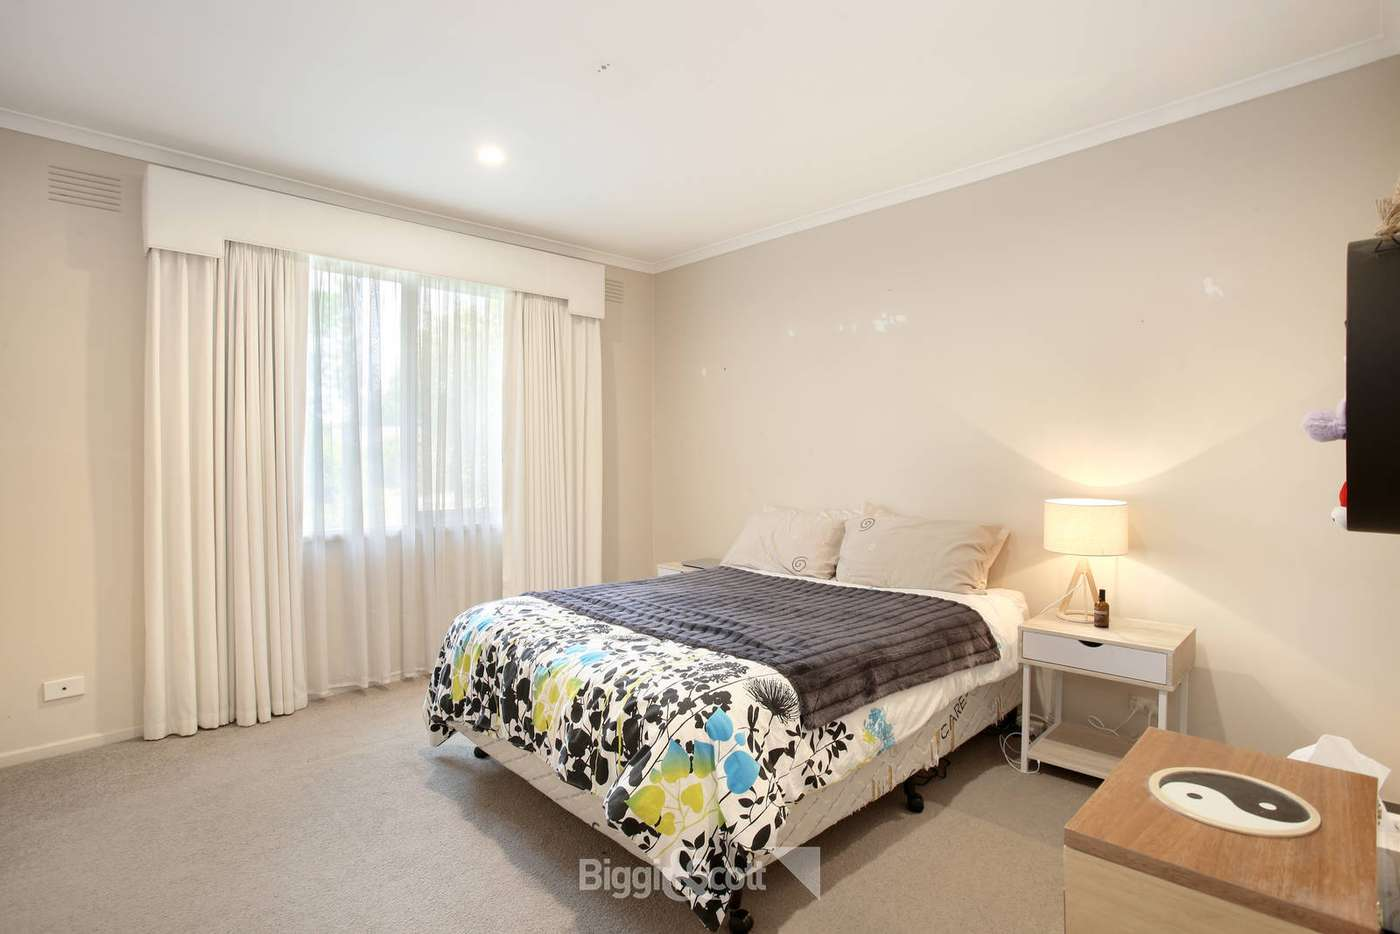 Seventh view of Homely house listing, 32 Ambleside Crescent, Berwick VIC 3806